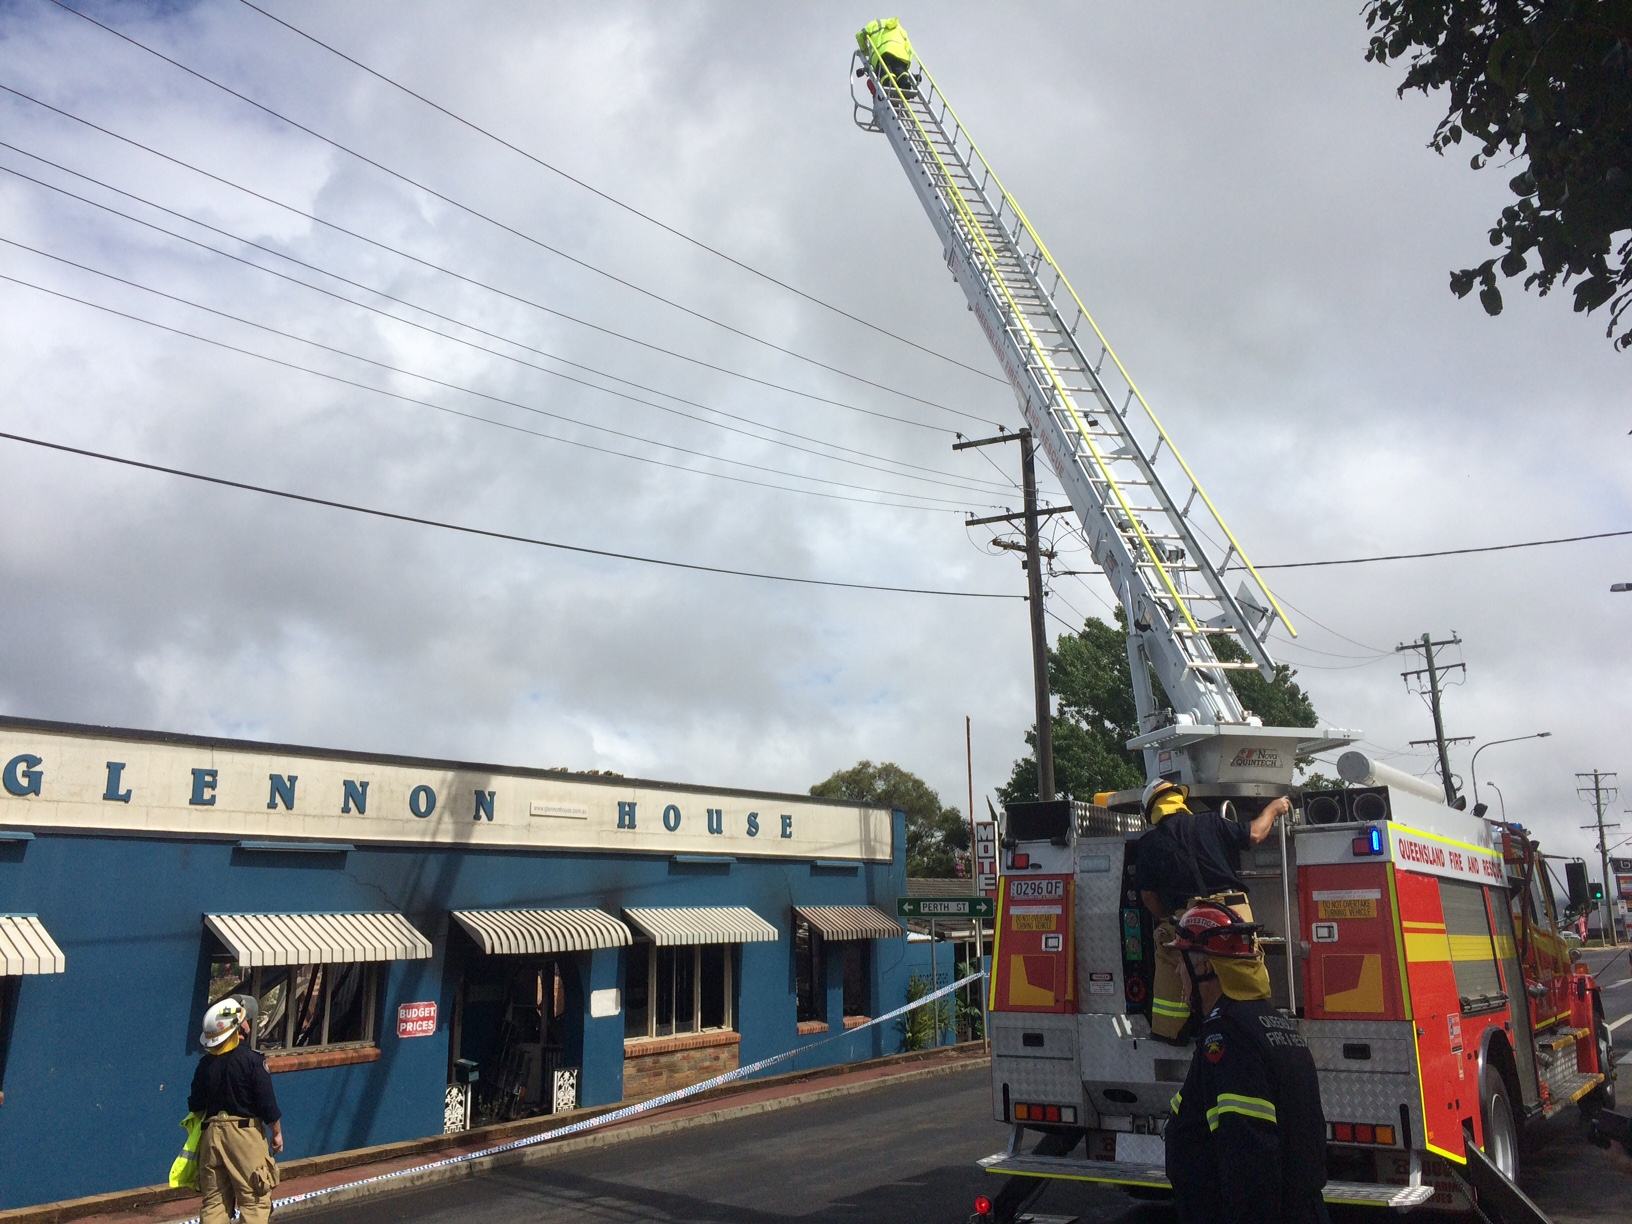 Firefighters clear the scene at the Glennon House Motel fire that gutted the building.